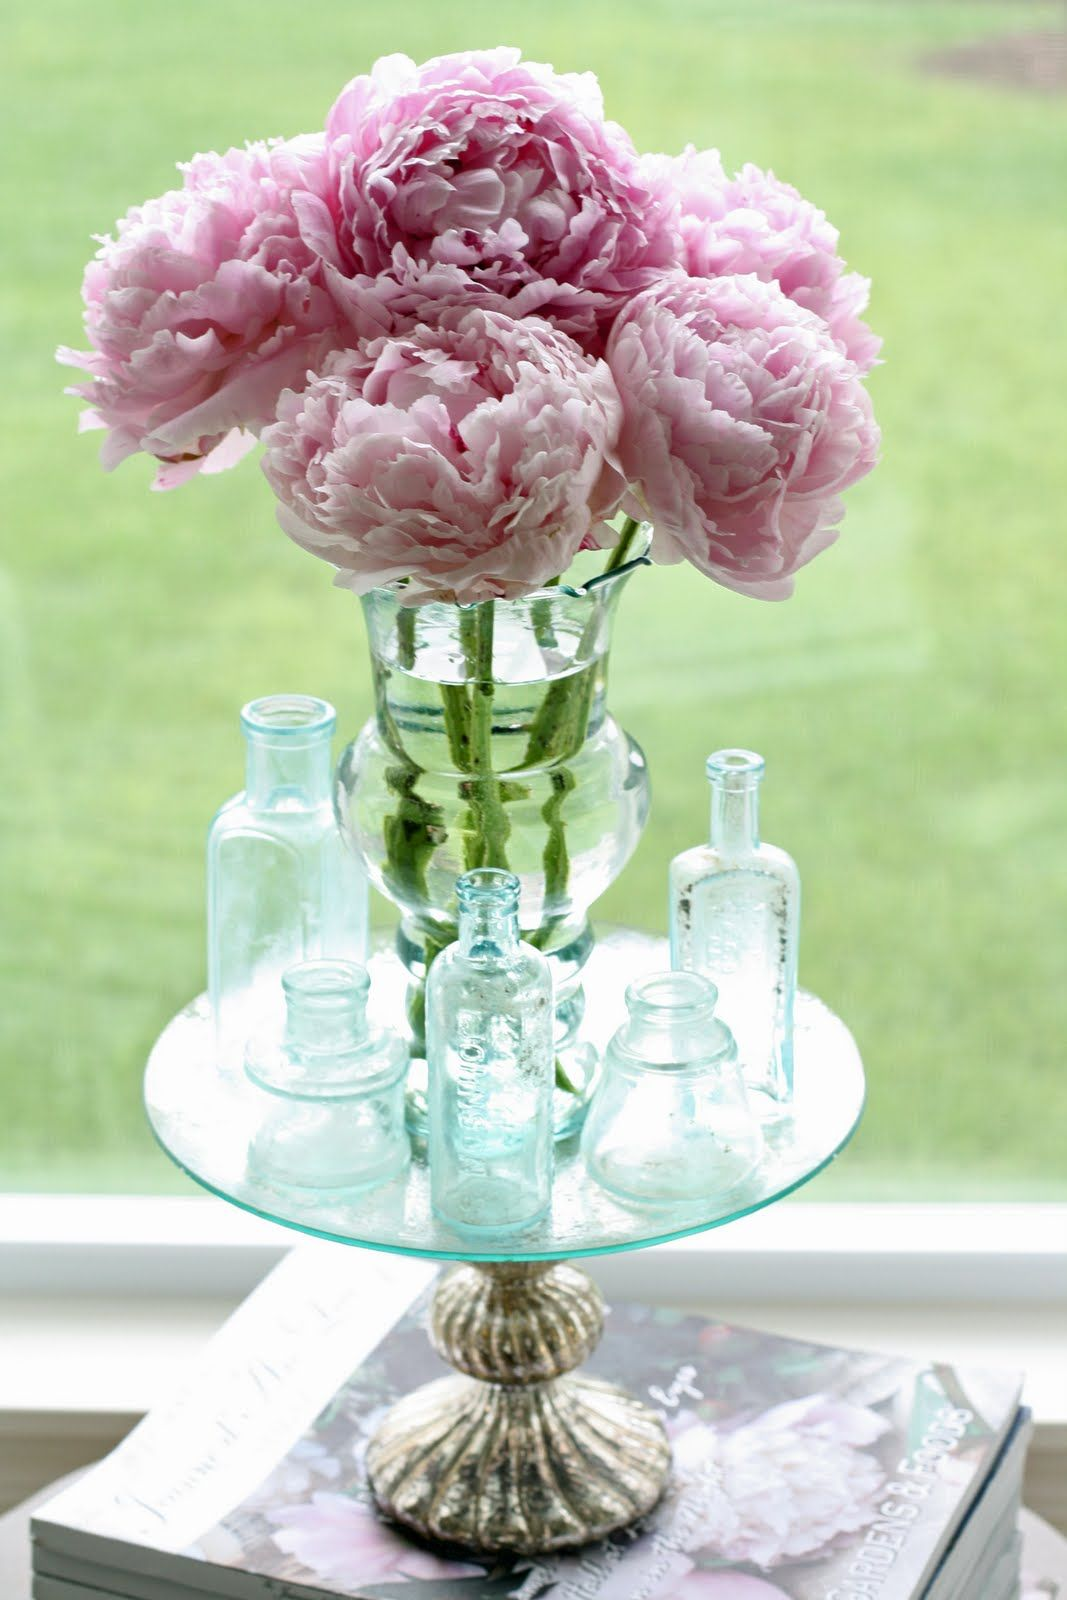 Peonies & bottles on a lovely table